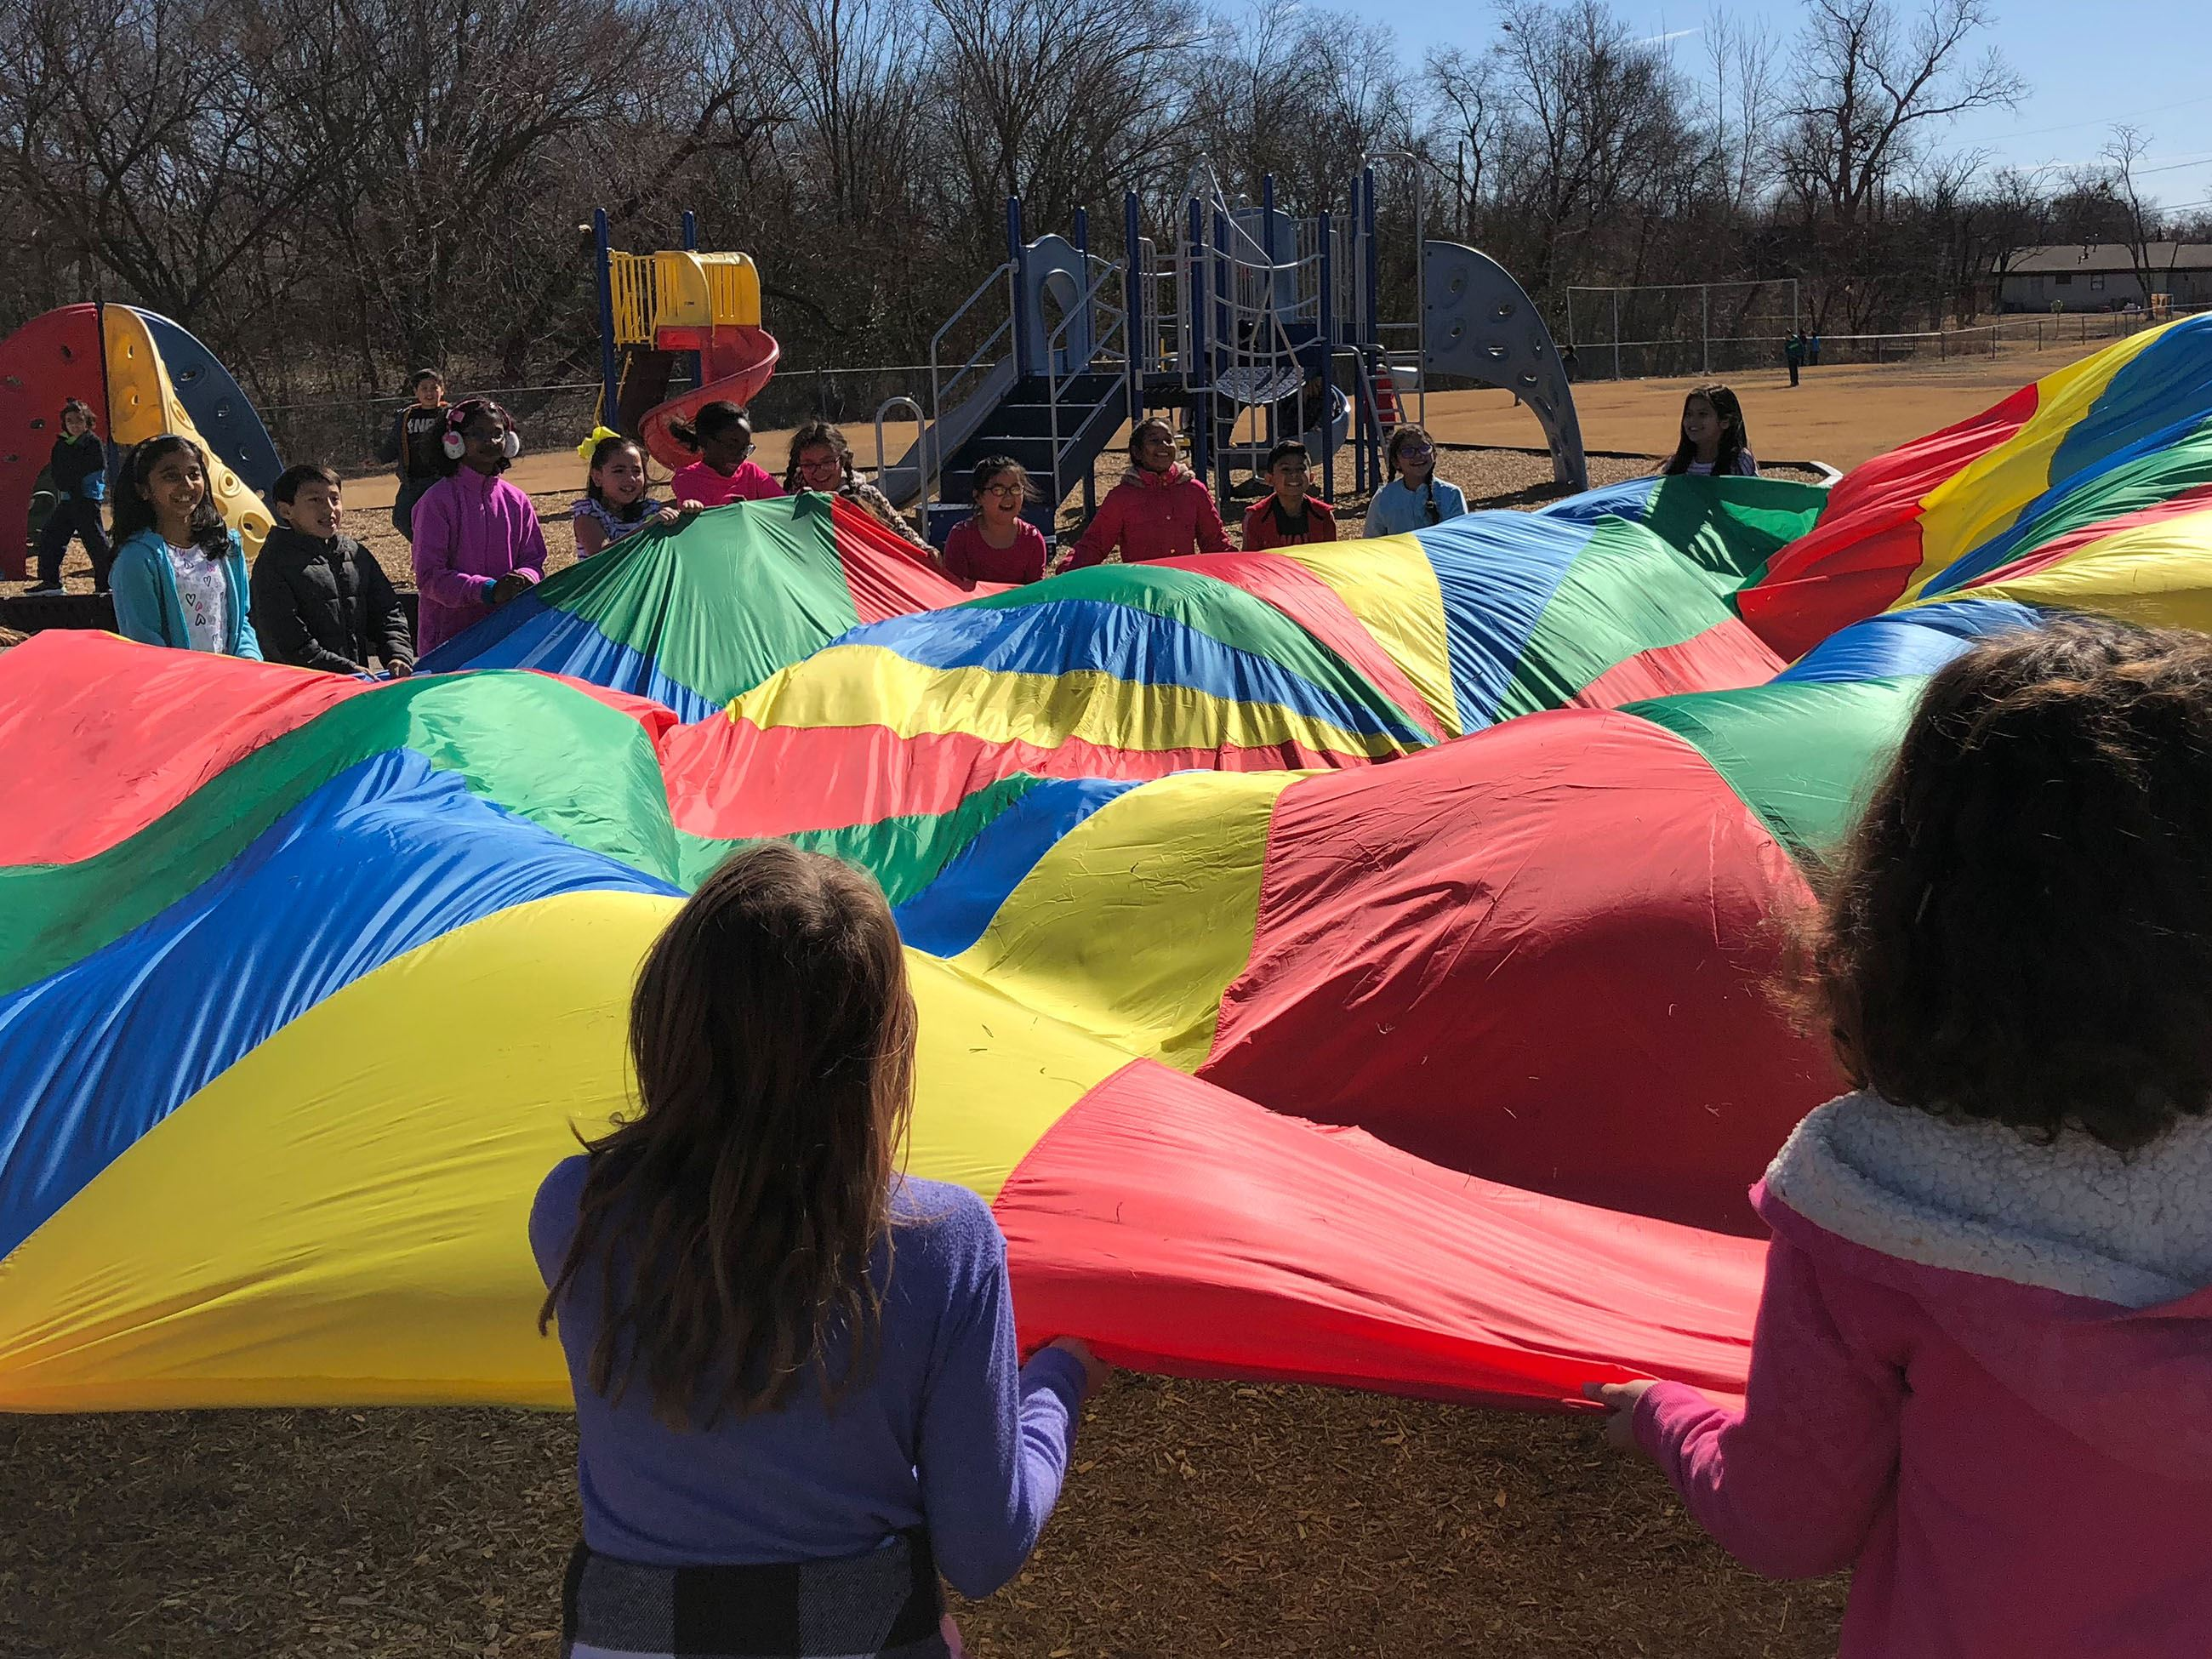 Kids playing with a colorful parachute